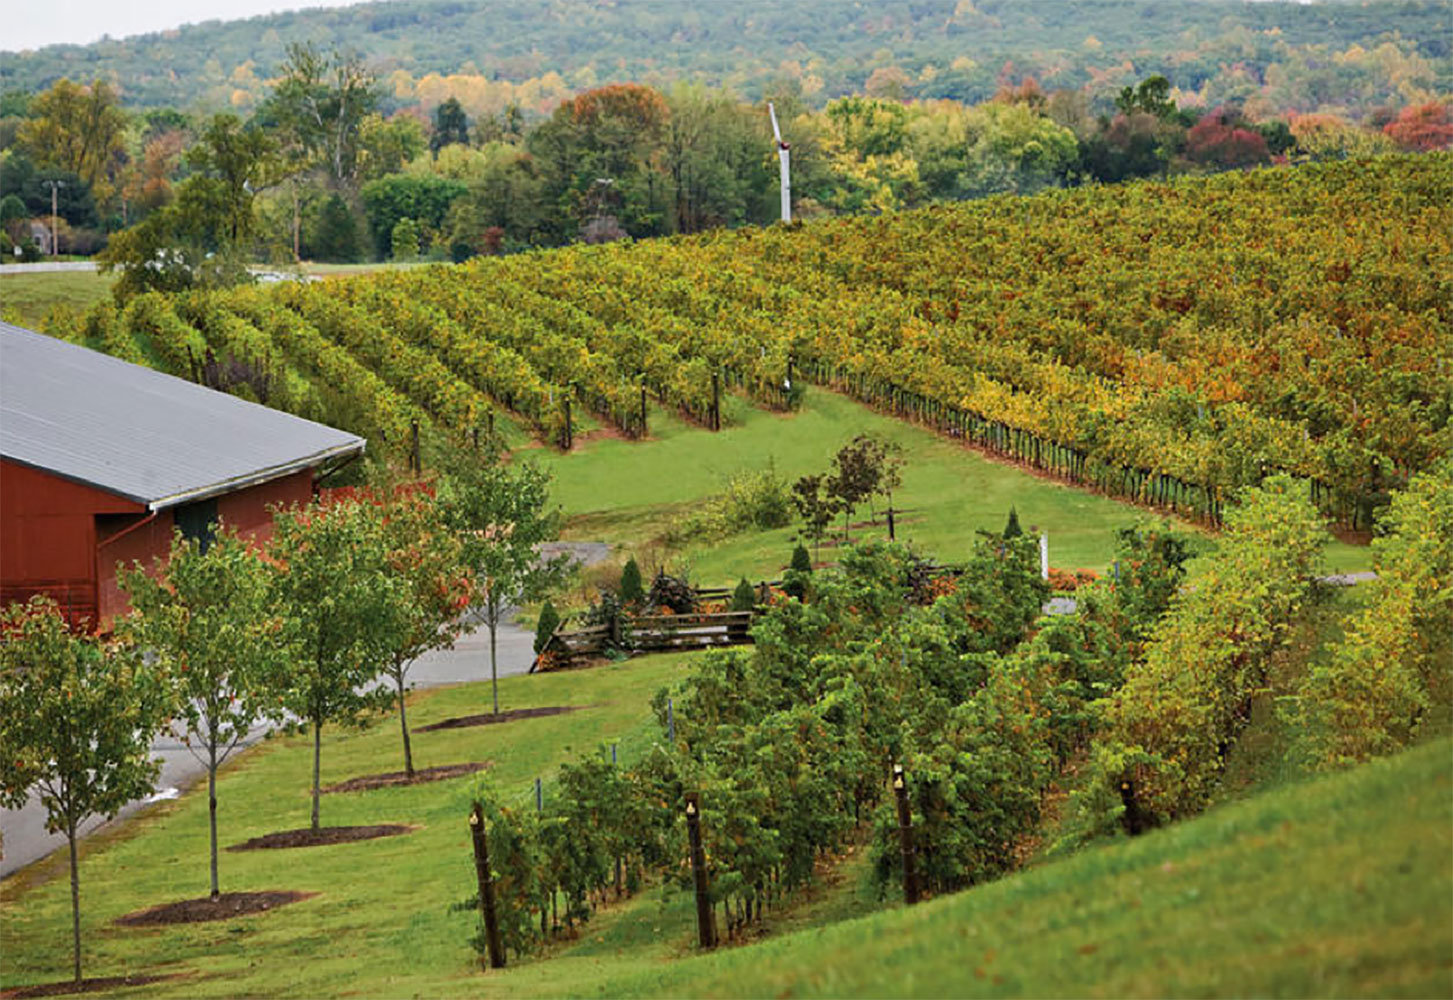 Sip Your Way Through Virginia's Wine Country